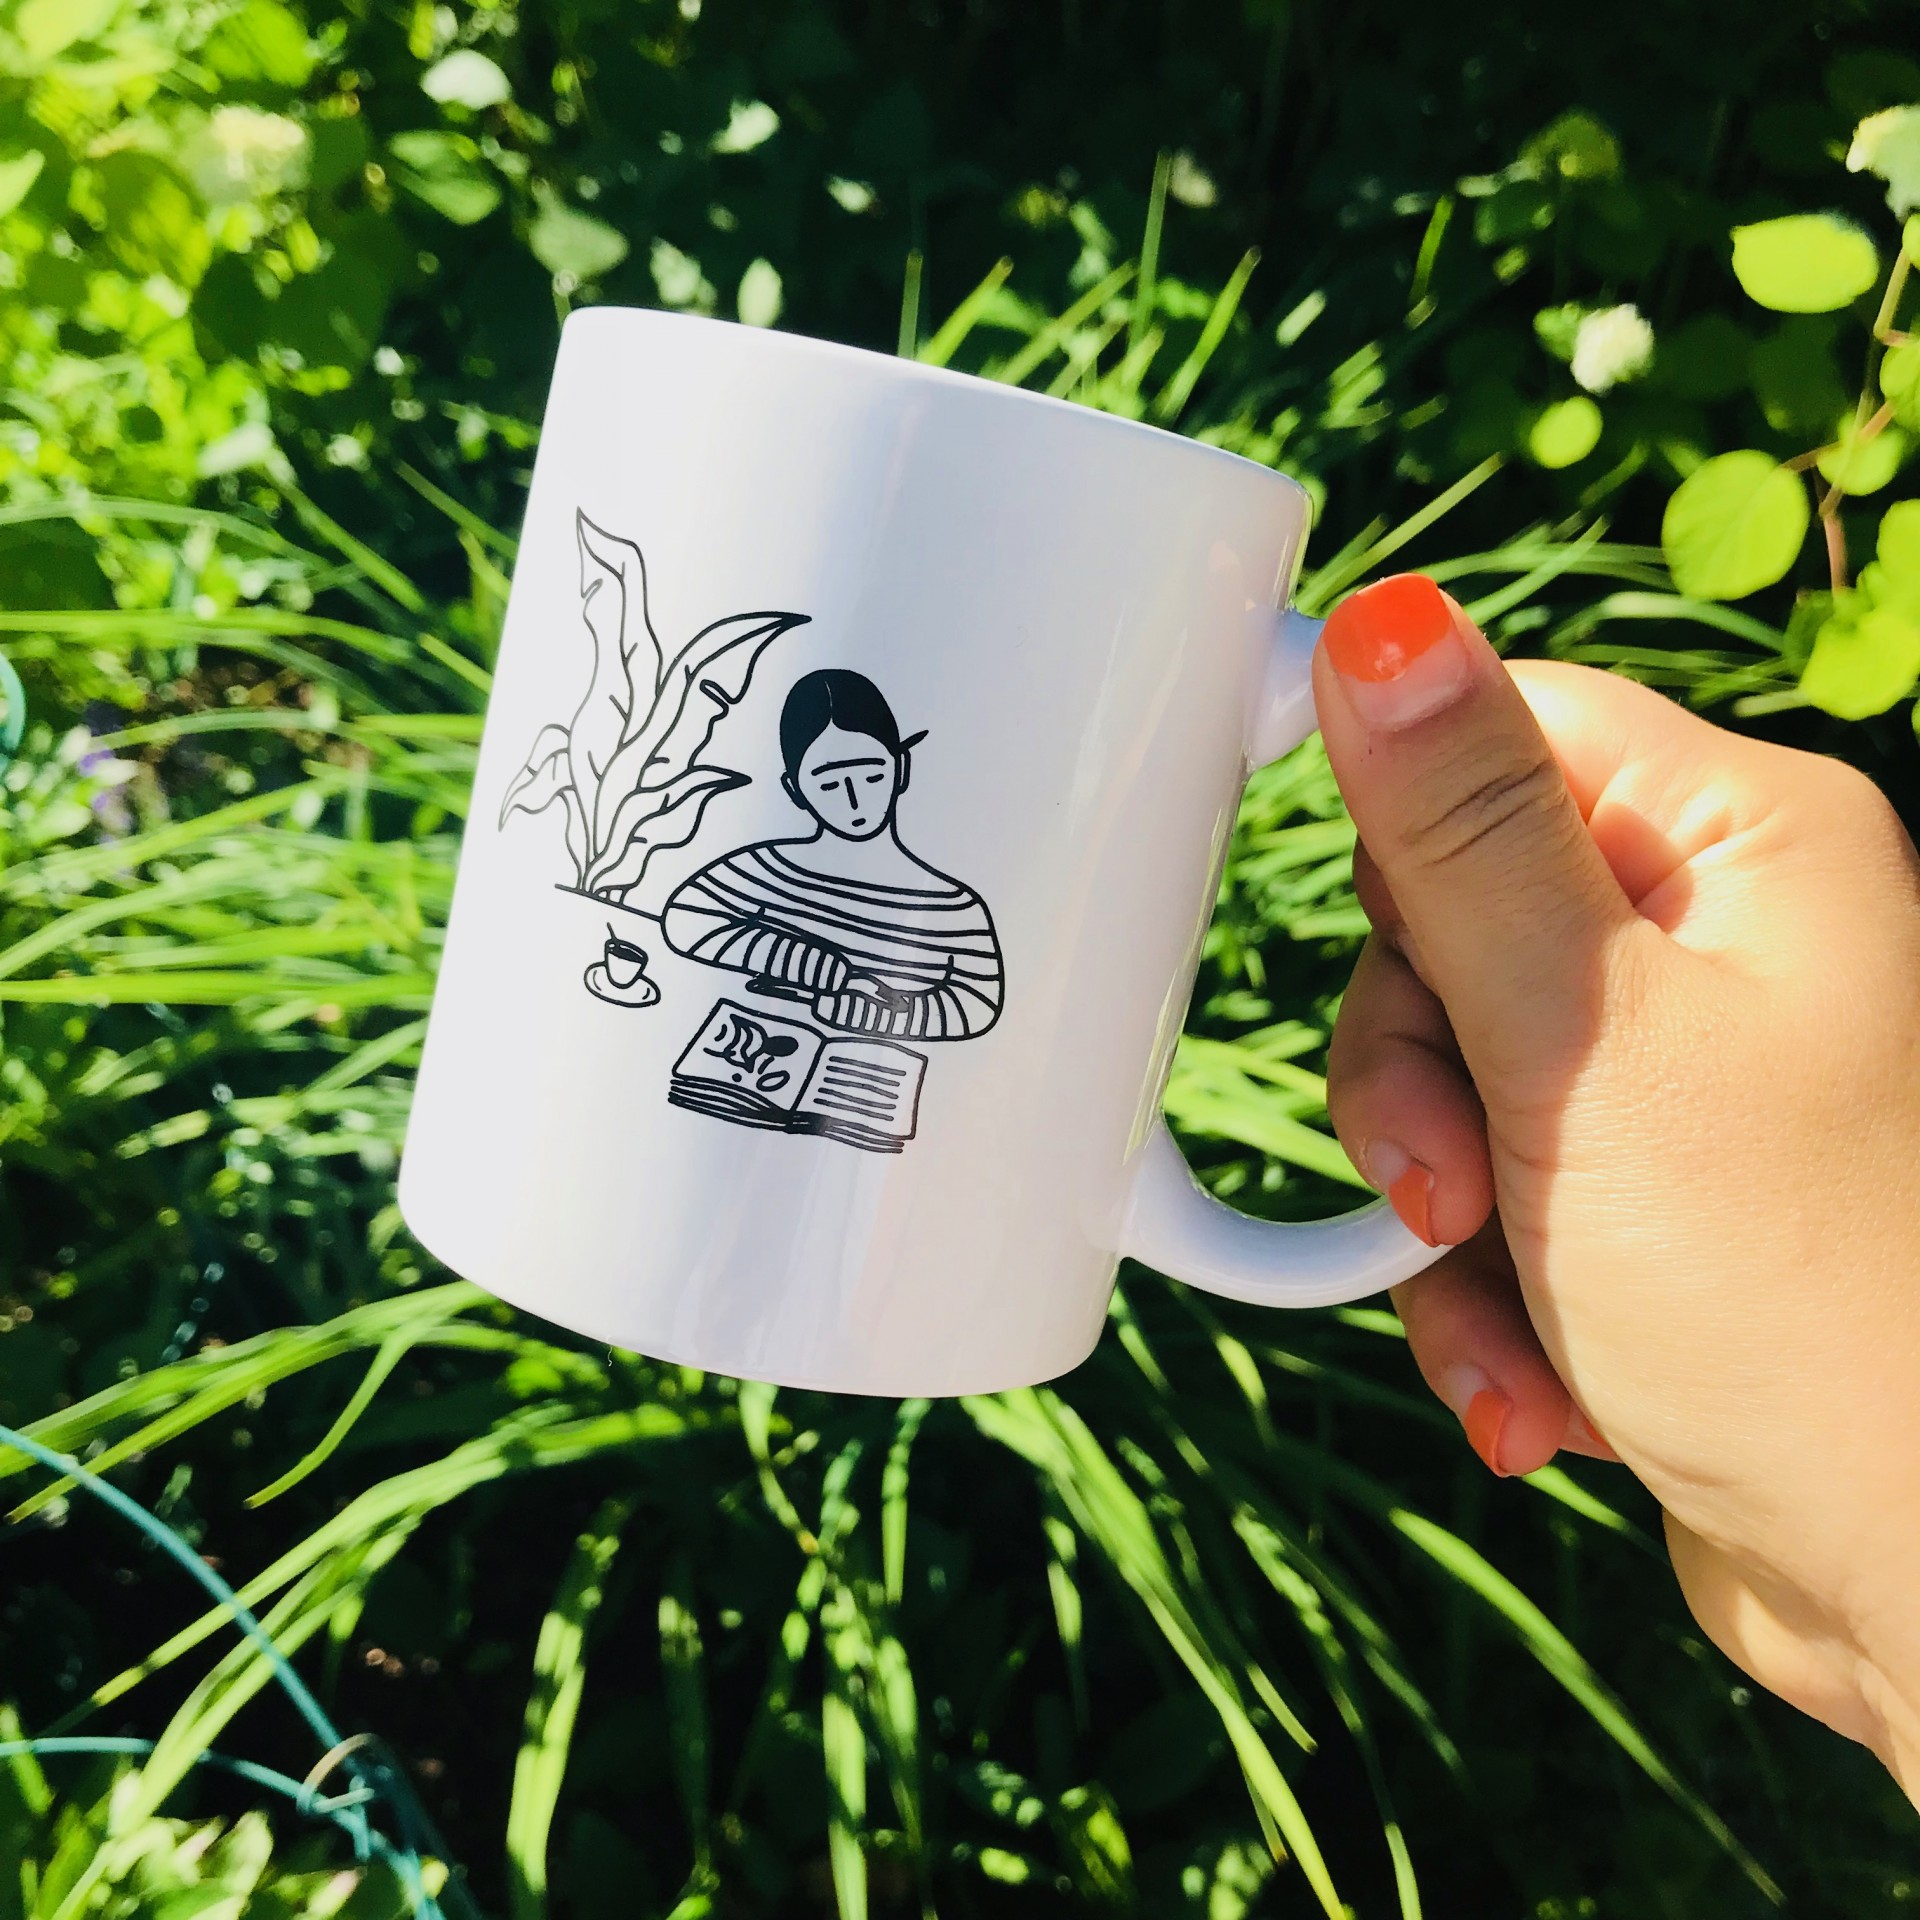 Hand holding white ceramic mug. Simple black drawing on mug features girl in striped shirt reading at table with plant to her left.